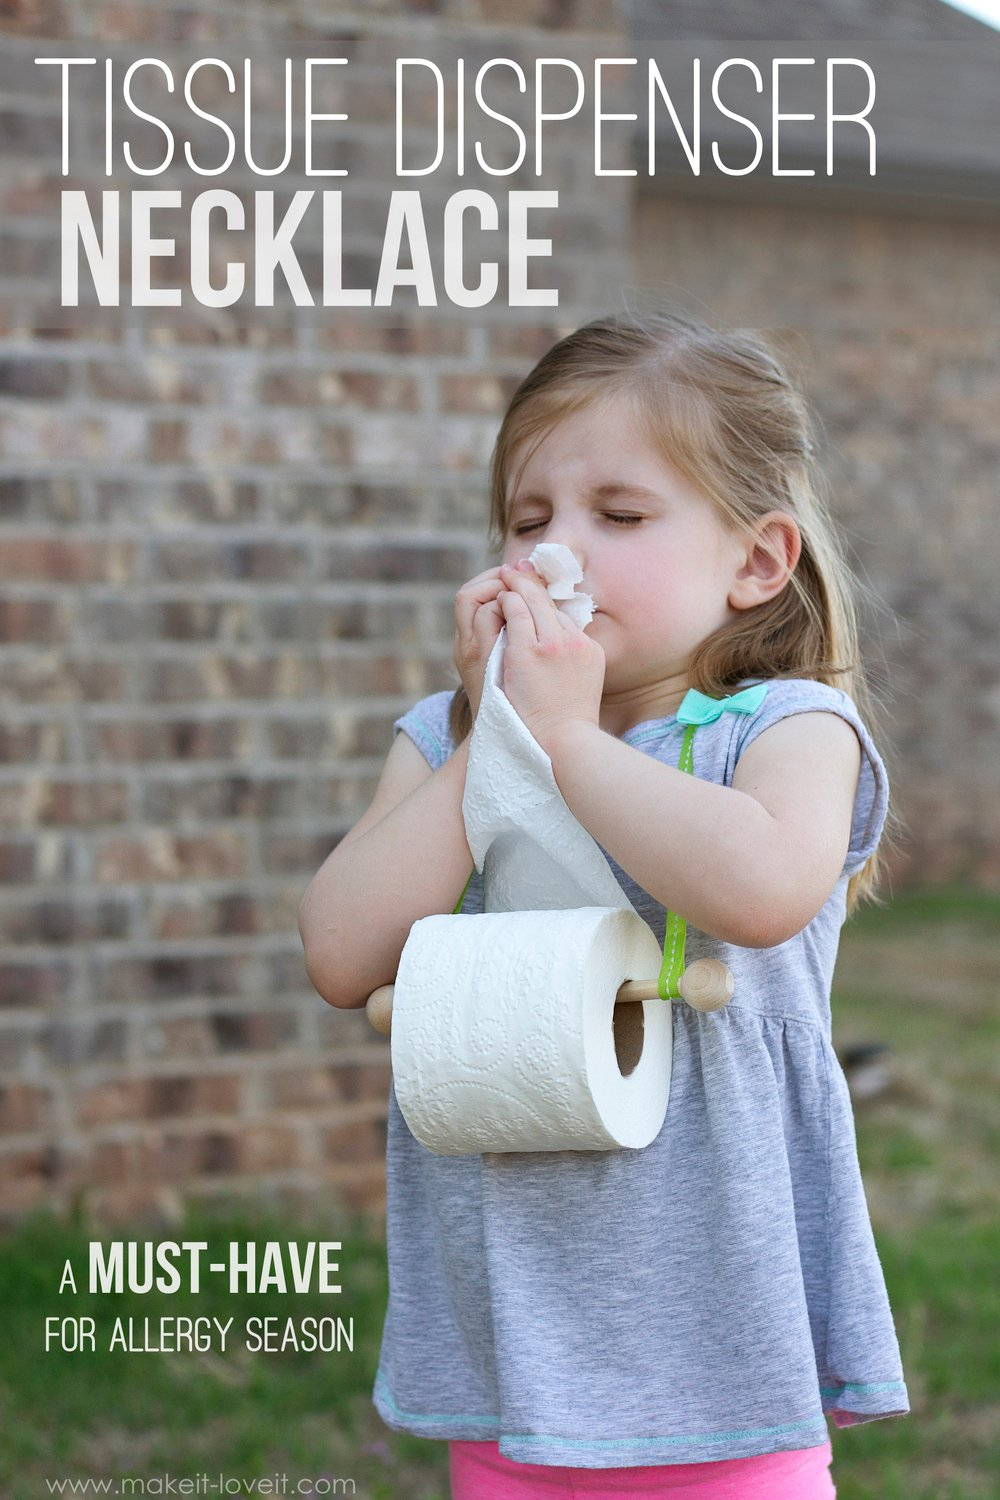 Tissue Dispenser Necklace...a MUST-HAVE for spring! | via Make It and Love It